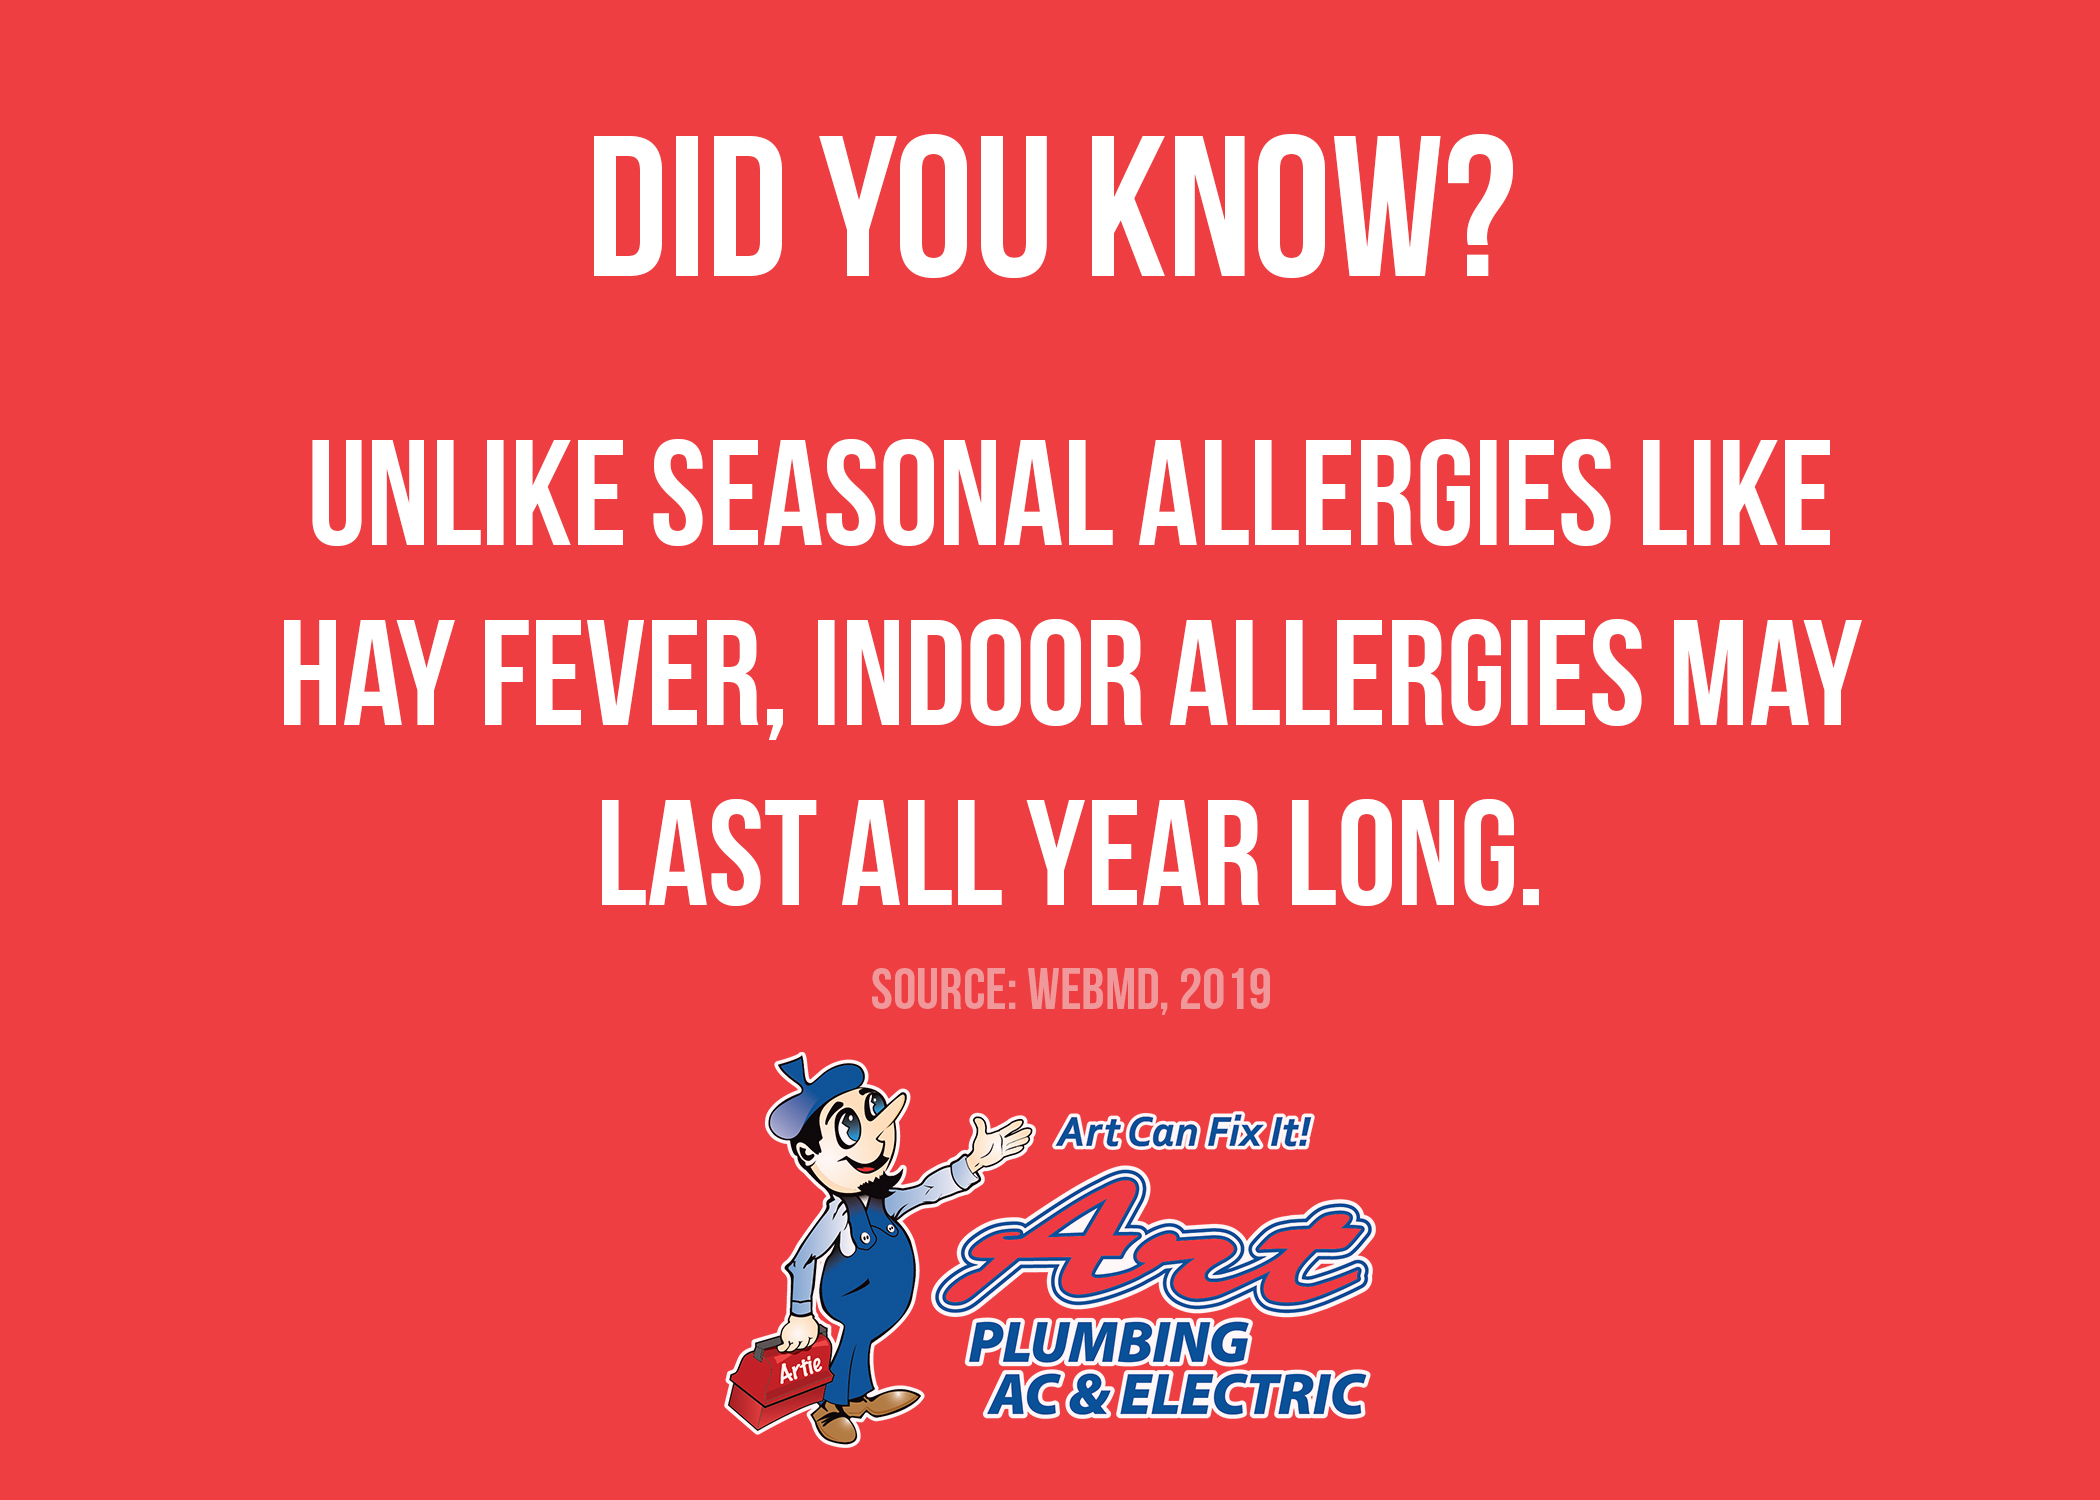 Did You Know That Unlike Hay Fever, Indoor Allergies May Last All Year